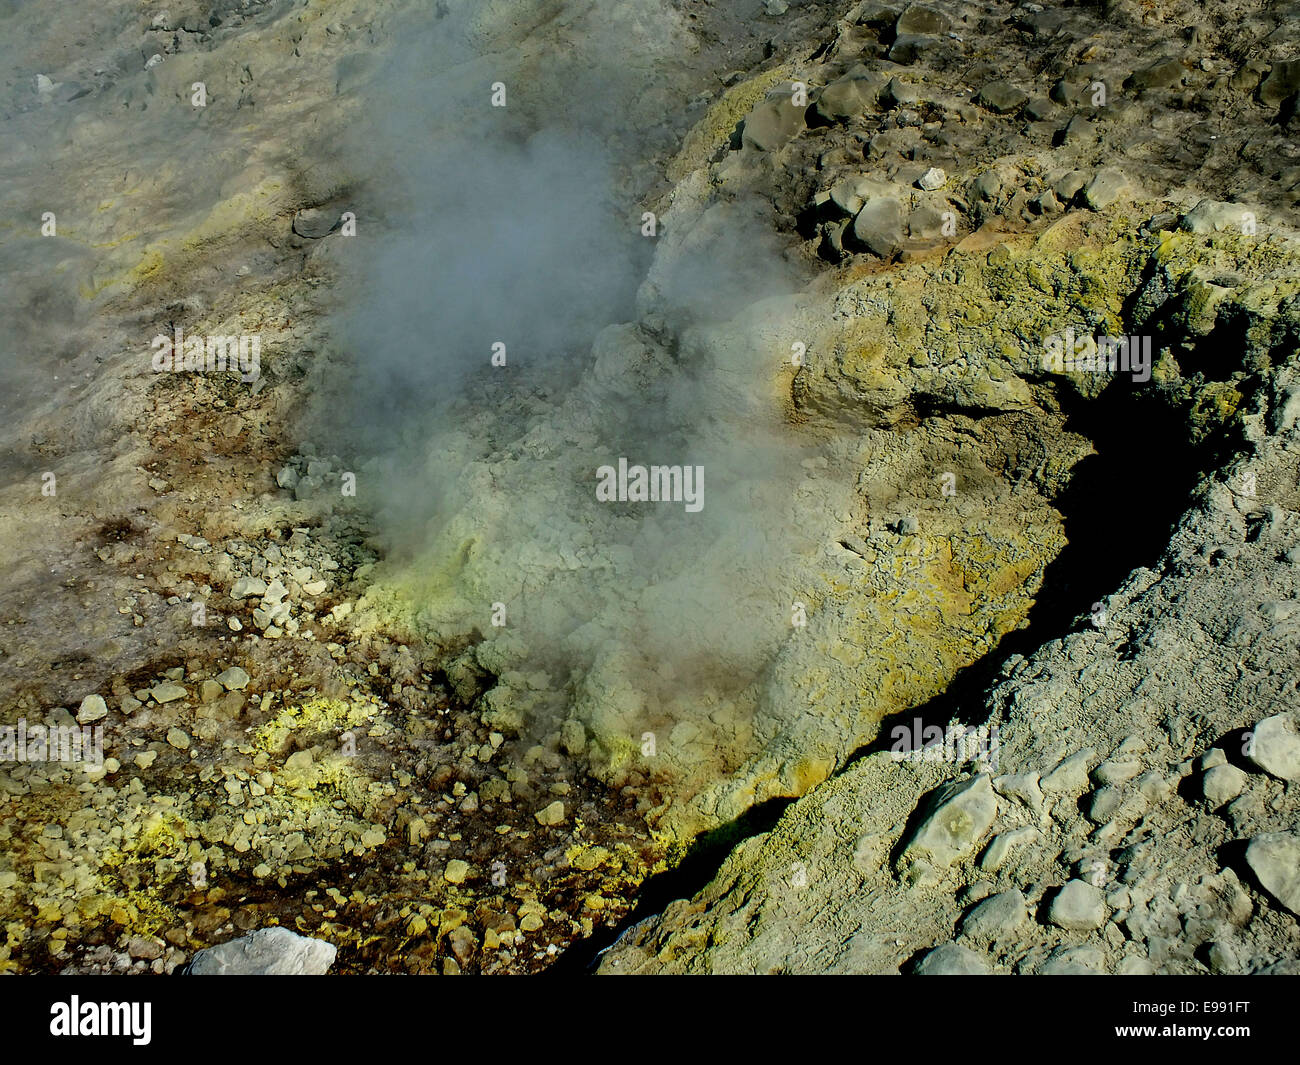 In the magma chamber penetrated seawater mixed with sulfur increases as poisonous gas (H2SO4) upwards and condenses - Stock Image